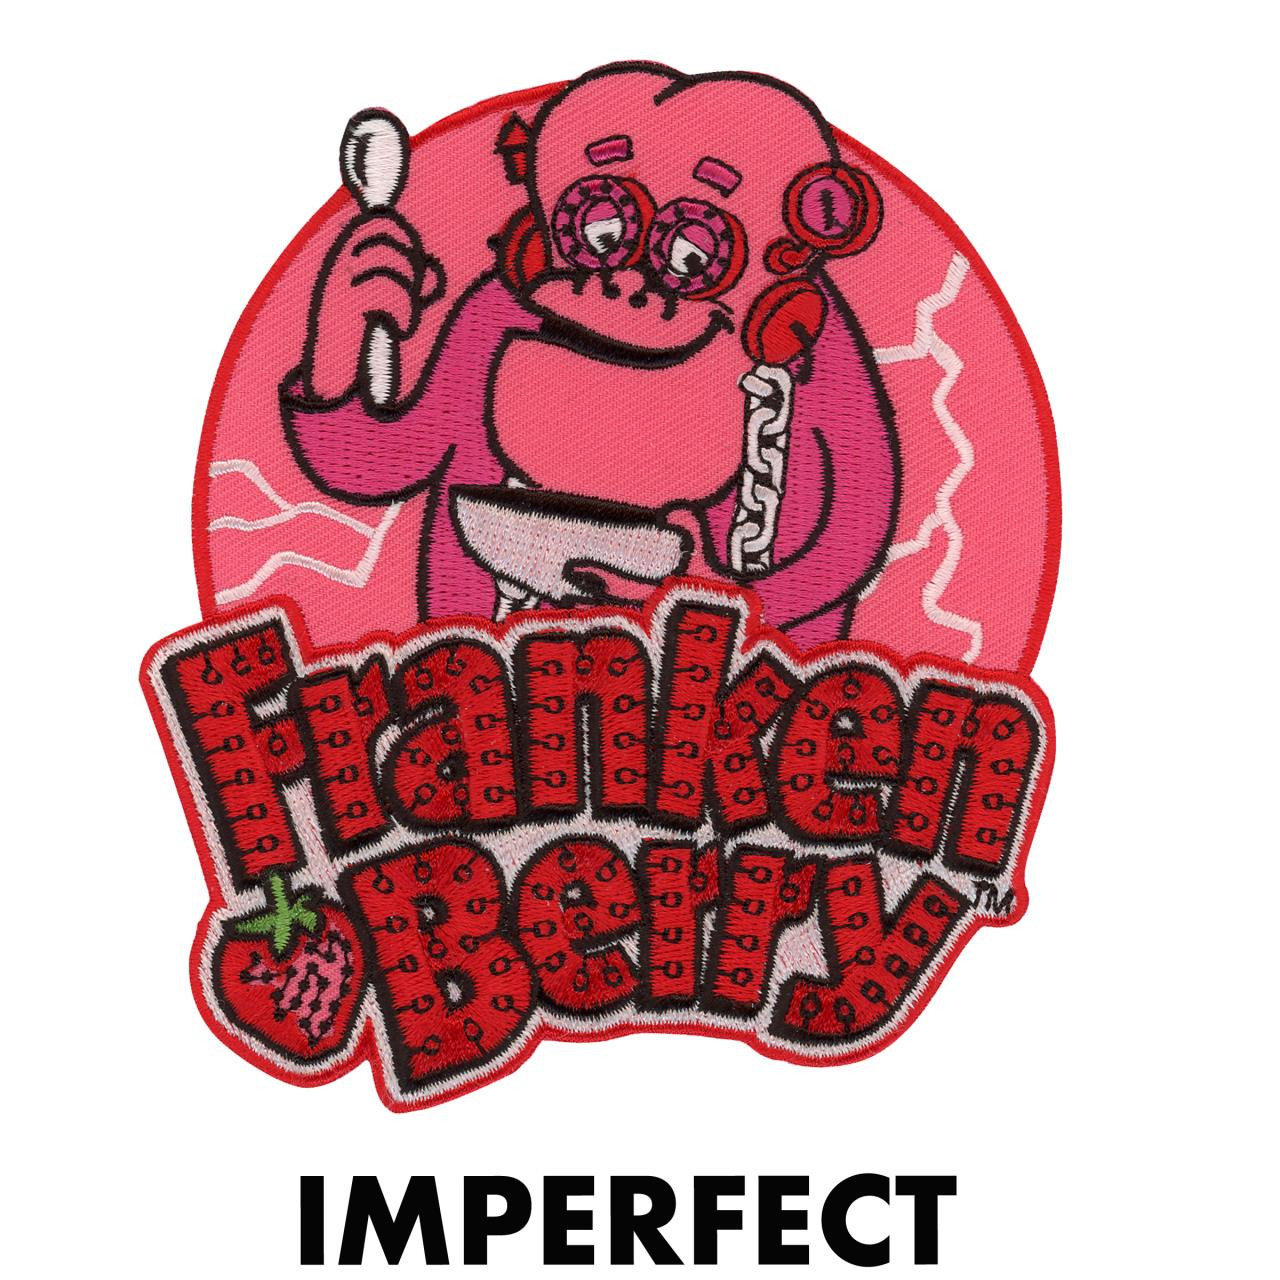 Imperfect General Mills Franken Berry Patch* -